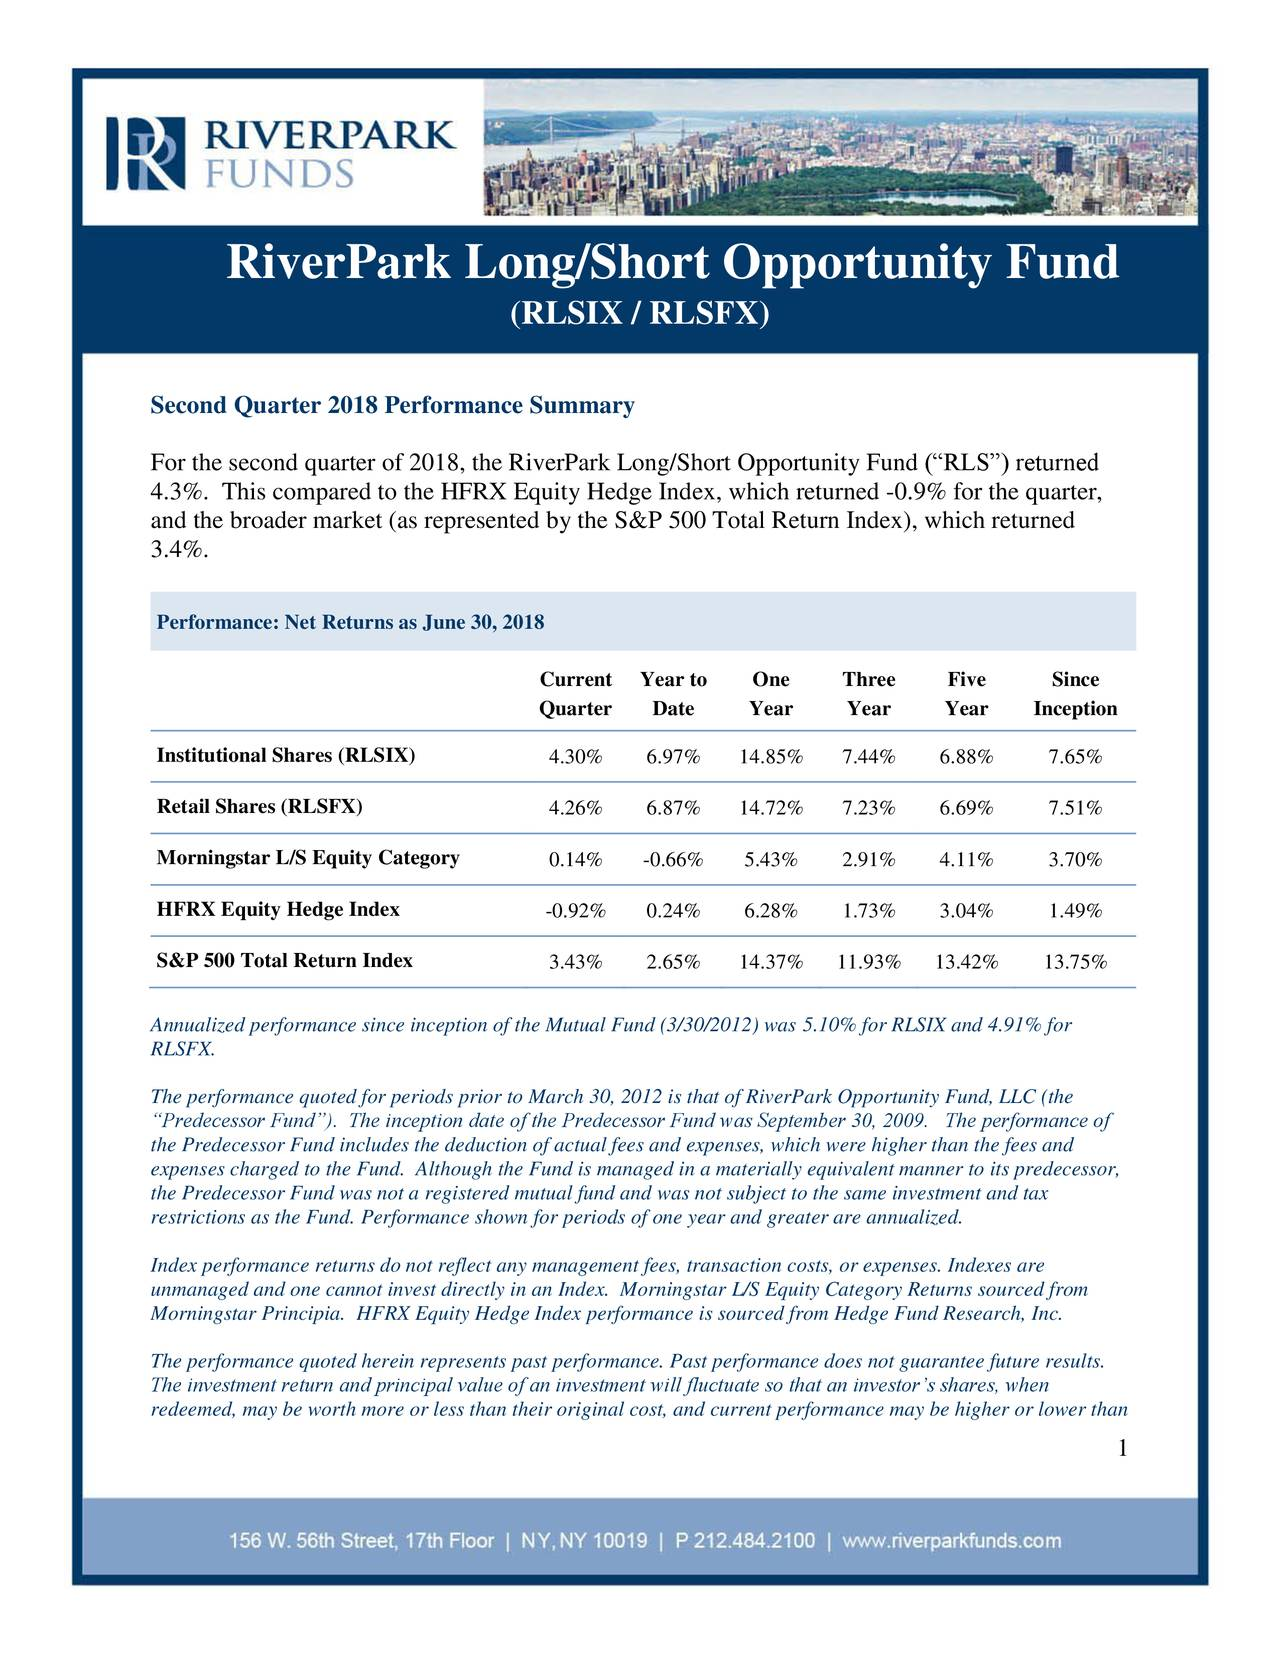 "(RLSIX / RLSFX) Second Quarter 2018 Performance Summary For the second quarter of 2018, the RiverPark Long/Short Opportunity Fund (""RLS"") returned 4.3%. This compared to the HFRX Equity Hedge Index, which returned -0.9% for the quarter, and the broader market (as represented by the S&P 500 Total Return Index), which returned 3.4%. Performance: Net Returns as June 30, 2018 Current Year to One Three Five Since Quarter Date Year Year Year Inception Institutional Shares (RLSIX) 4.30% 6.97% 14.85% 7.44% 6.88% 7.65% Retail Shares (RLSFX) 4.26% 6.87% 14.72% 7.23% 6.69% 7.51% Morningstar L/S Equity Category 0.14% -0.66% 5.43% 2.91% 4.11% 3.70% HFRX Equity Hedge Index -0.92% 0.24% 6.28% 1.73% 3.04% 1.49% S&P 500 Total Return Index 3.43% 2.65% 14.37% 11.93% 13.42% 13.75% Annualized performance since inception of the Mutual Fund (3/30/2012) was 5.10% for RLSIX and 4.91% for RLSFX. The performance quoted for periods prior to March 30, 2012 is that of RiverPark Opportunity Fund, LLC (the ""Predecessor Fund""). The inception date of the Predecessor Fund was September 30, 2009. The performance of the Predecessor Fund includes the deduction of actual fees and expenses, which were higher than the fees and expenses charged to the Fund. Although the Fund is managed in a materially equivalent manner to its predecessor, the Predecessor Fund was not a registered mutual fund and was not subject to the same investment and tax restrictions as the Fund. Performance shown for periods of one year and greater are annualized. Index performance returns do not reflect any management fees, transaction costs, or expenses. Indexes are unmanaged and one cannot invest directly in an Index. Morningstar L/S Equity Category Returns sourced from Morningstar Principia. HFRX Equity Hedge Index performance is sourced from Hedge Fund Research, Inc. The performance quoted herein represents past performance. Past performance does not guarantee future results. The investment return and principal value of an investment will fluctuate so that an investor's shares, when redeemed, may be worth more or less than their original cost, and current performance may be higher or lower than 1"